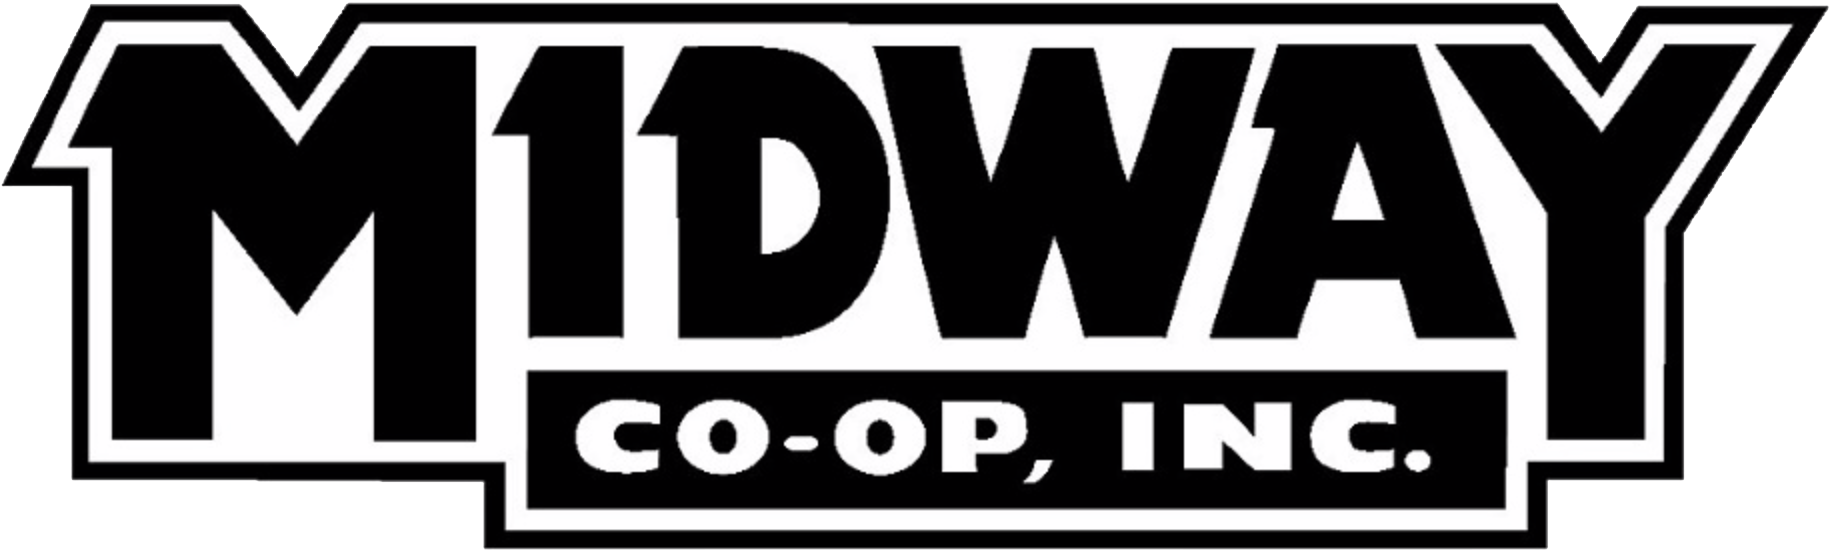 Midway Co-op, Inc.